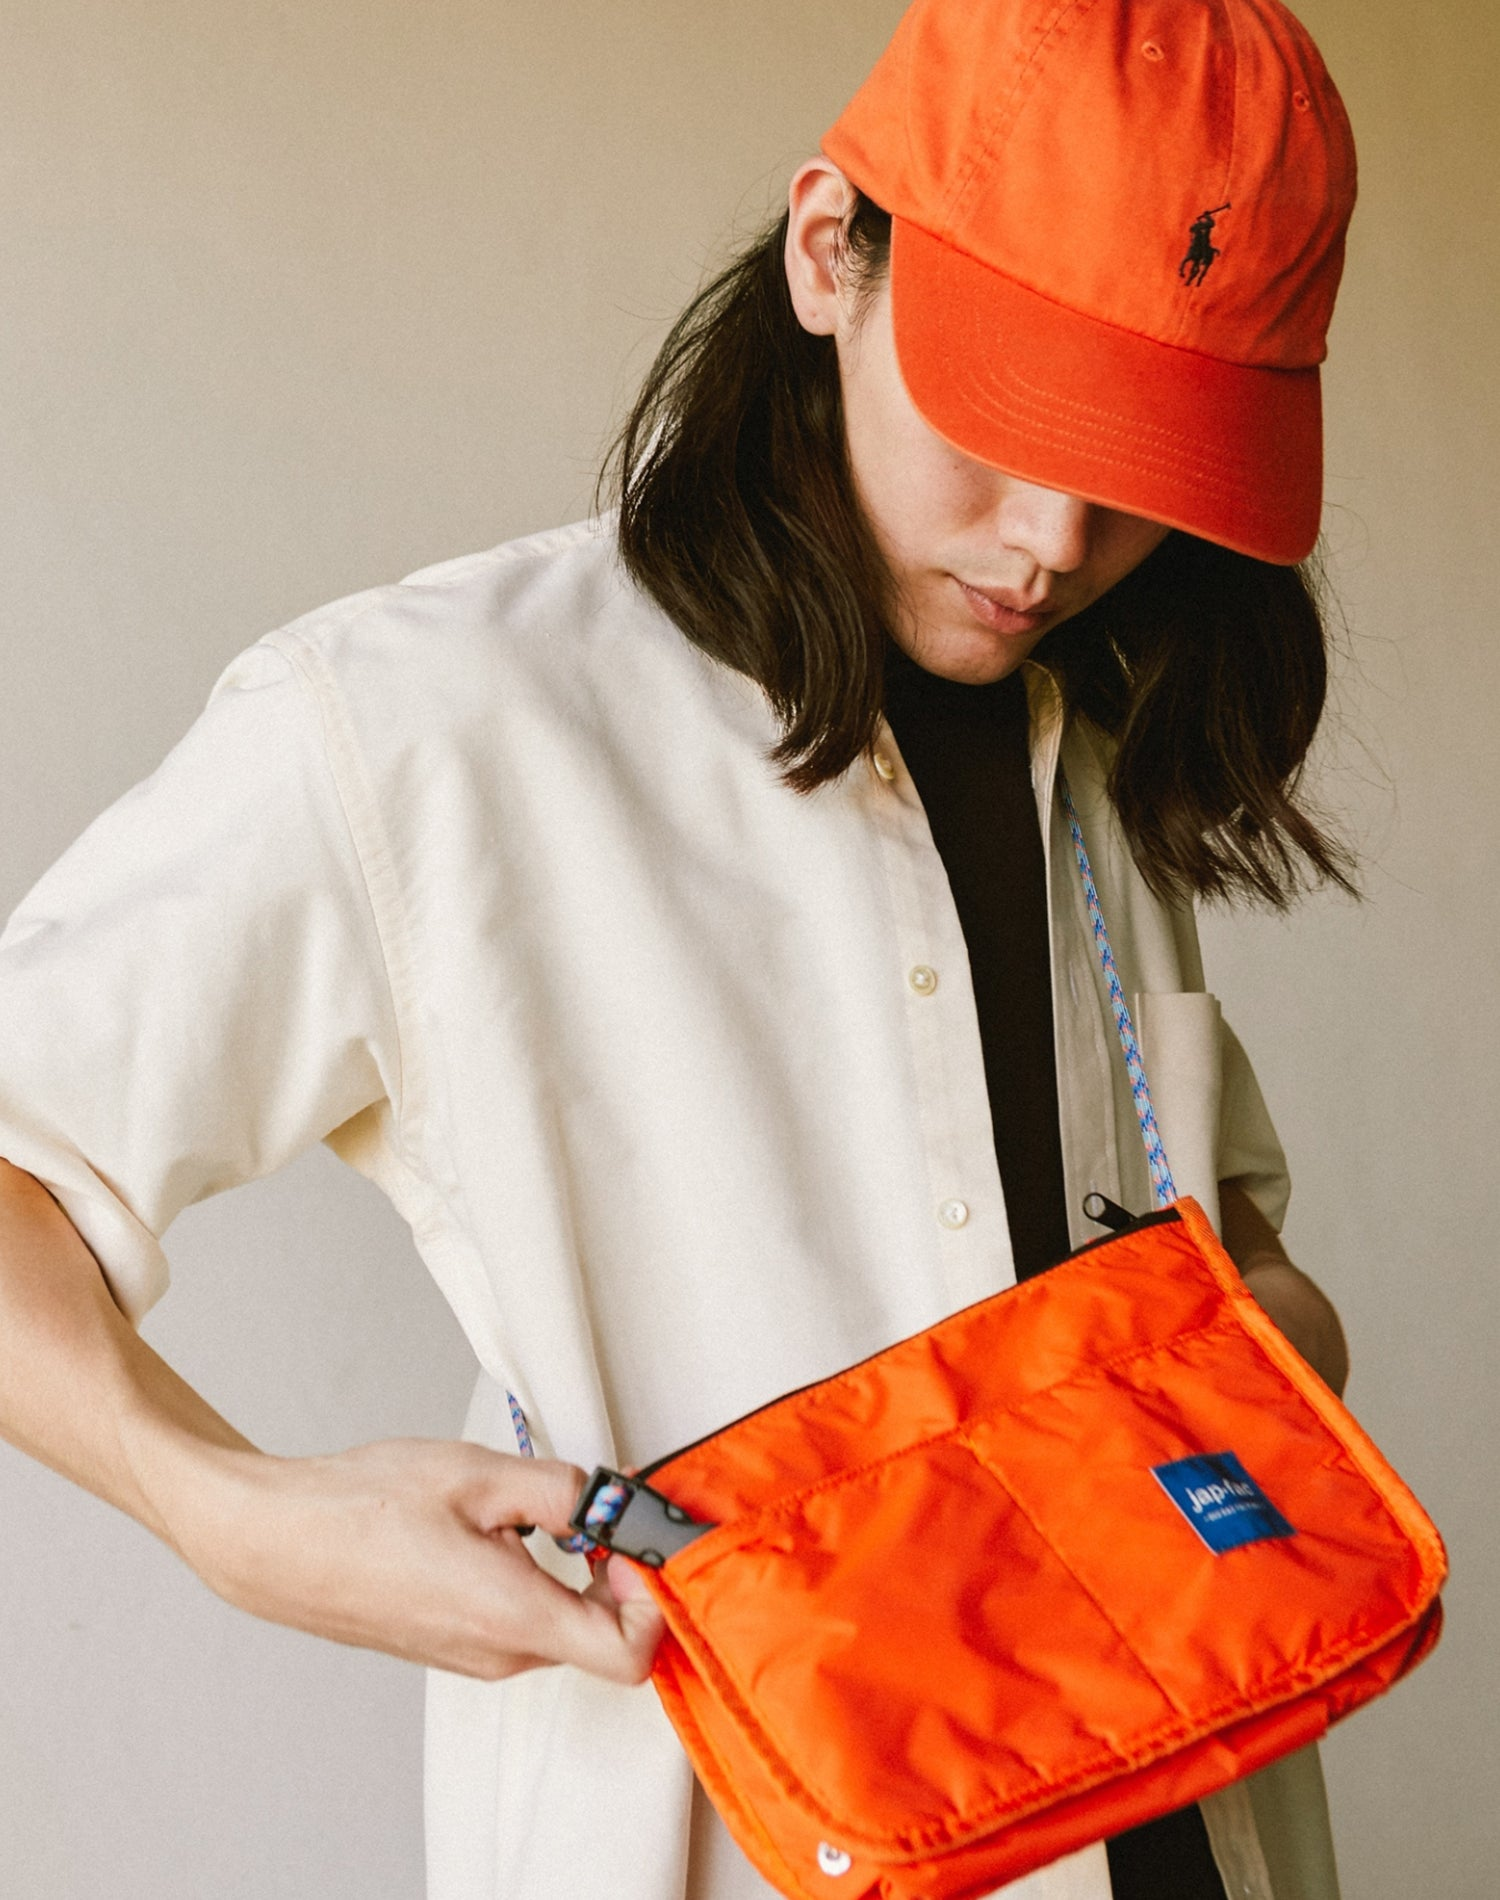 Orange Candy Waterproof Nylon Shoulder Bag.橙色防水尼龍單肩斜挎袋